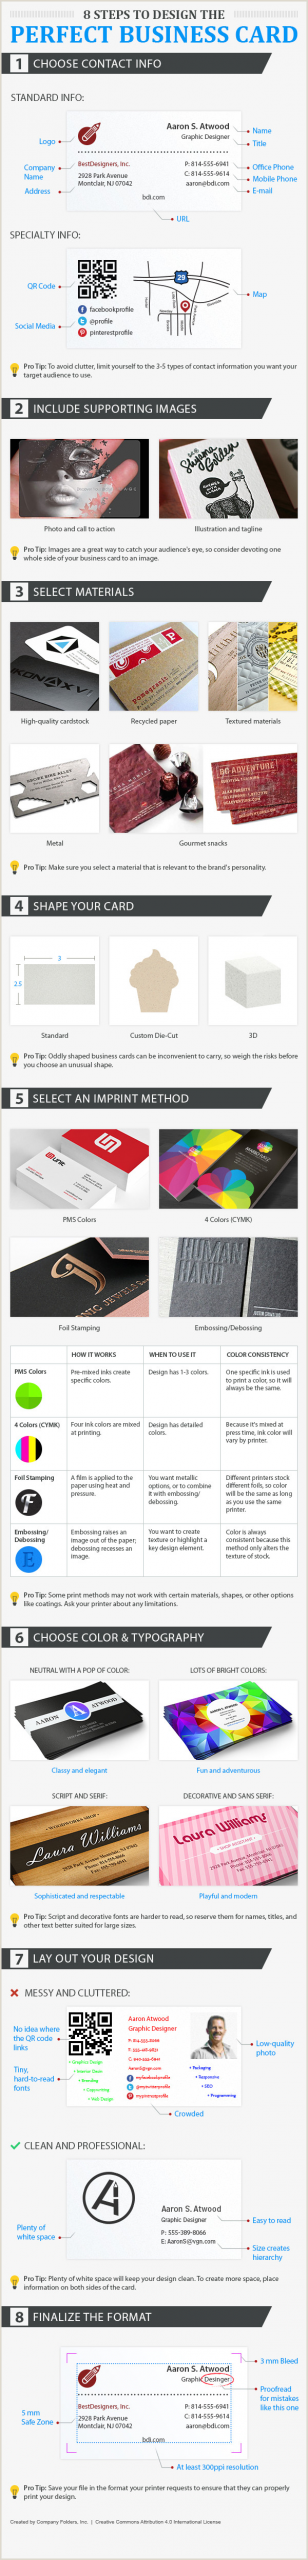 What Needs To Be On A Business Card How To Design The Perfect Business Card